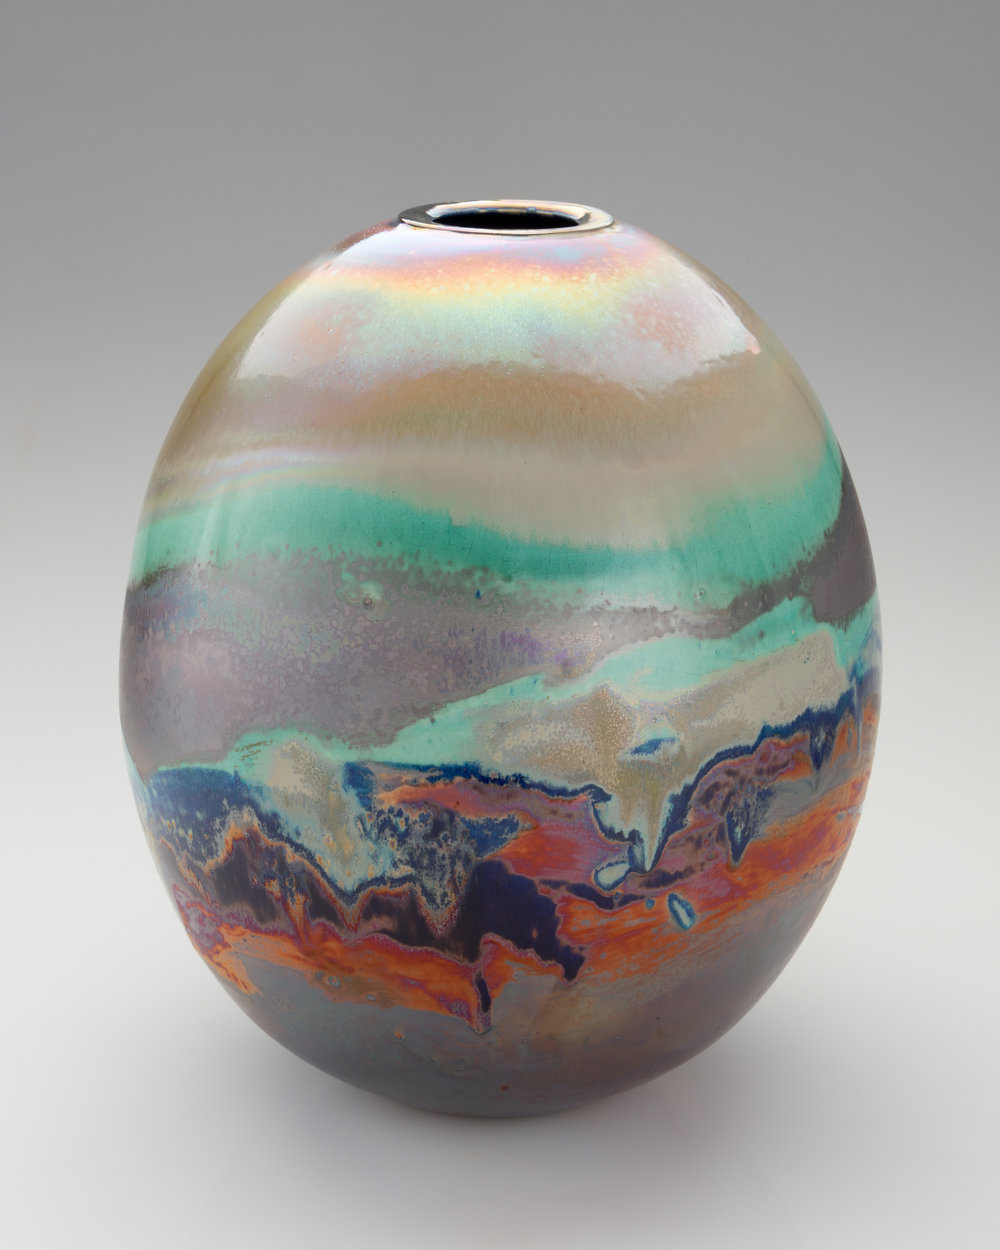 Yesterday's sky. 2018. Lustre glazed ceramic vase. 380mm H, 300mm Dia. $3,800 SOLD